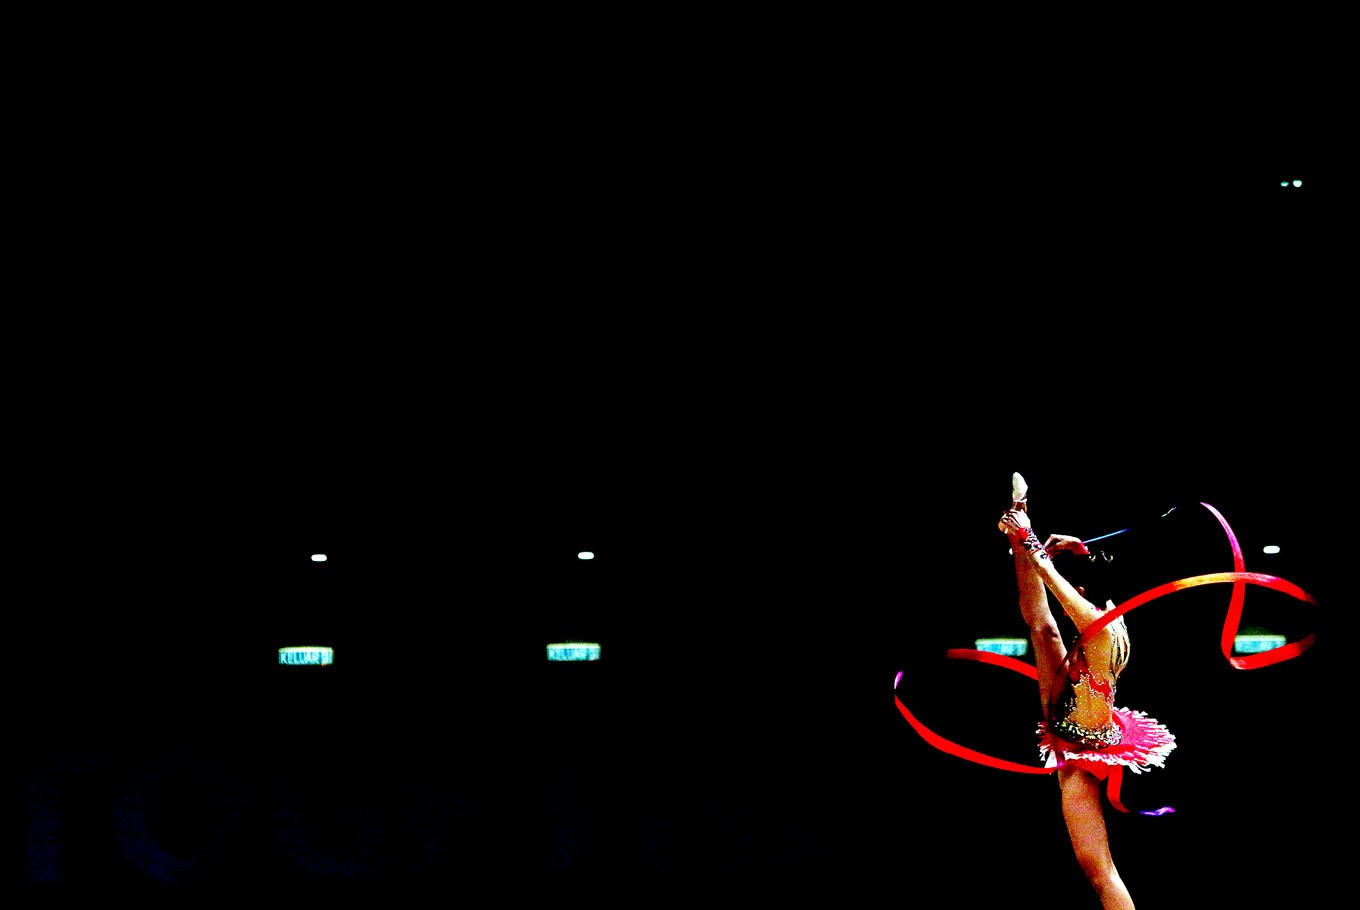 Strike a pose: Gymnast Nabila Evandestiera performs during the 29th SEA Games rhythmic gymnastics women's all-around finals. Indonesia's gymnastic team had won one gold medal, two silvers and six bronze medals as of Monday.